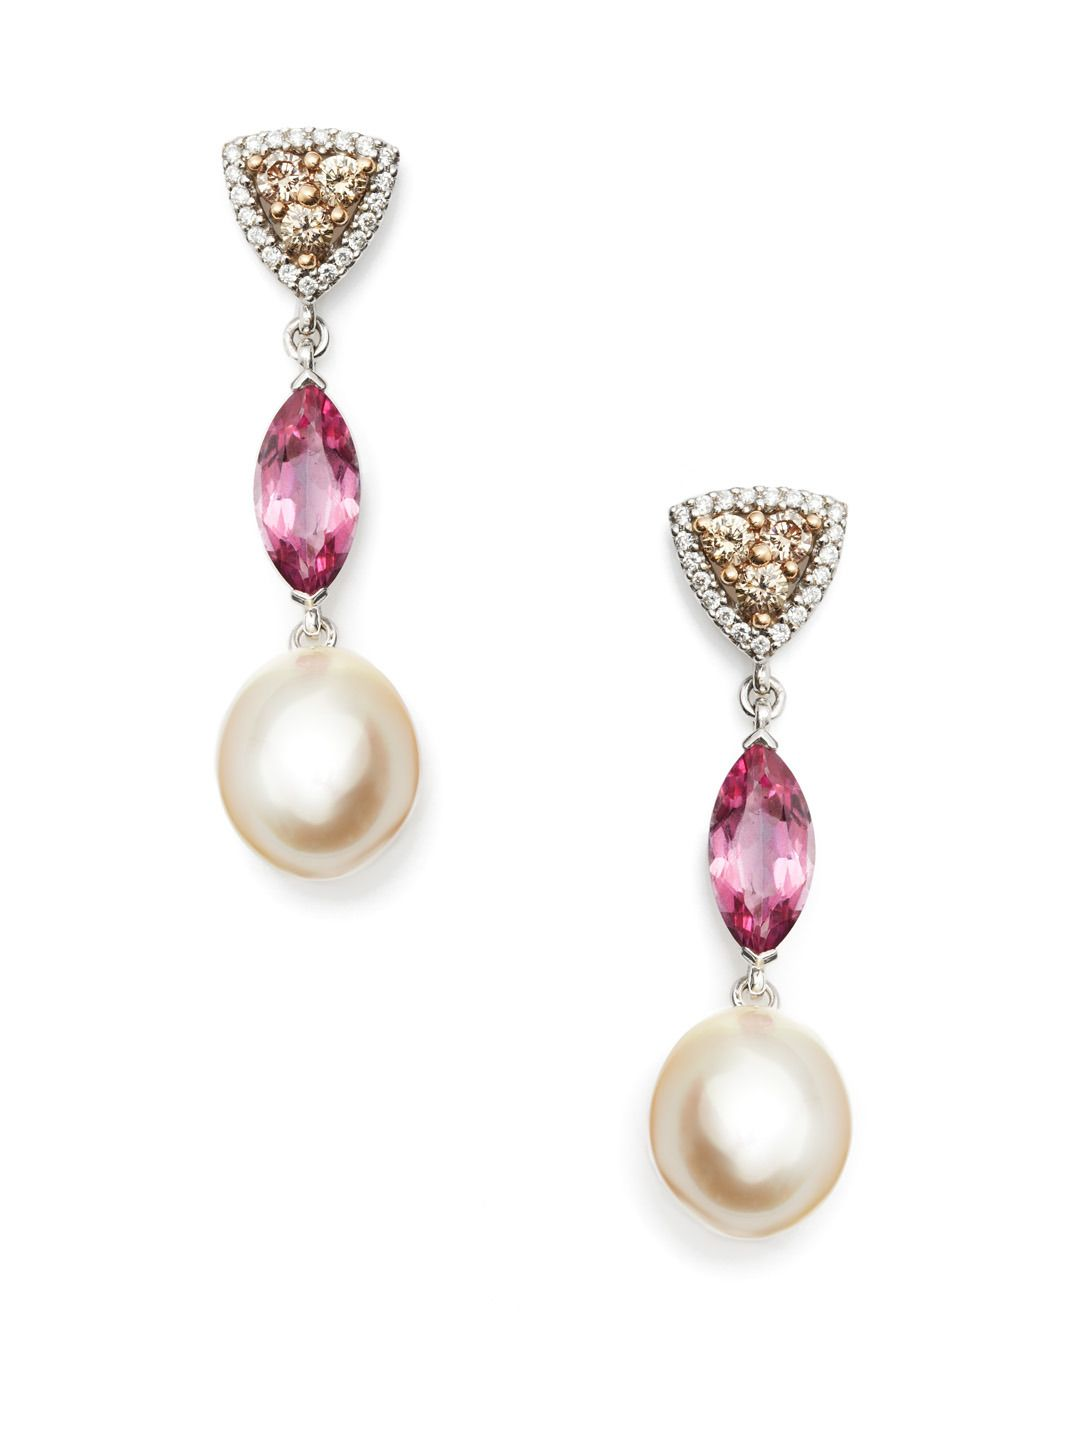 Pink Tourmaline & South Sea Pearl Drop Earrings by Baggins Pearls at Gilt